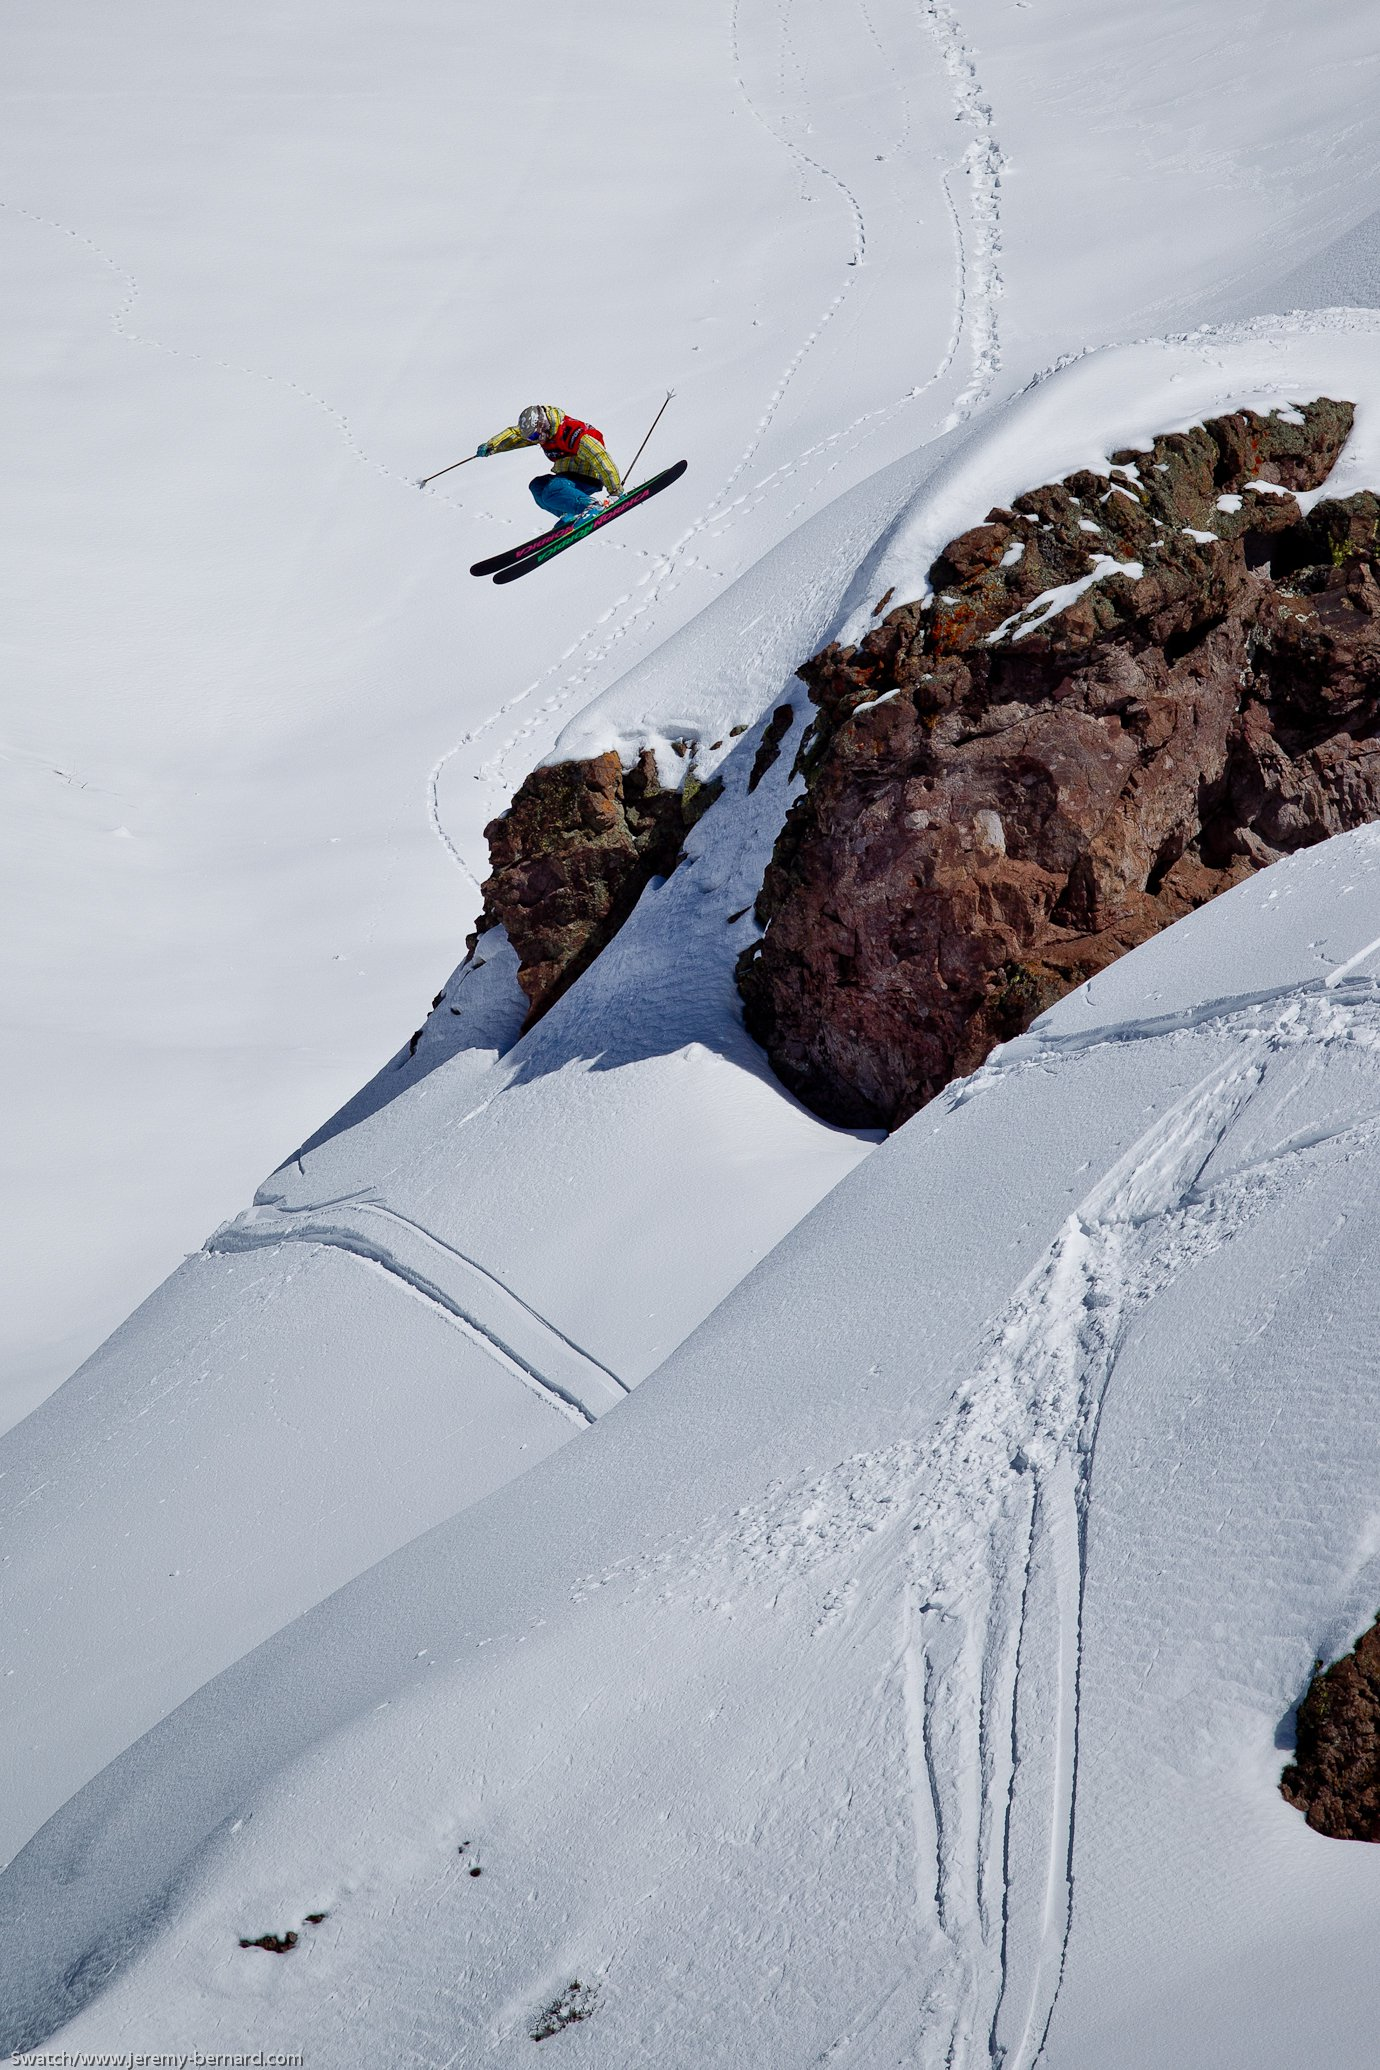 Oakley White-Allen at the Swatch Skiers Cup